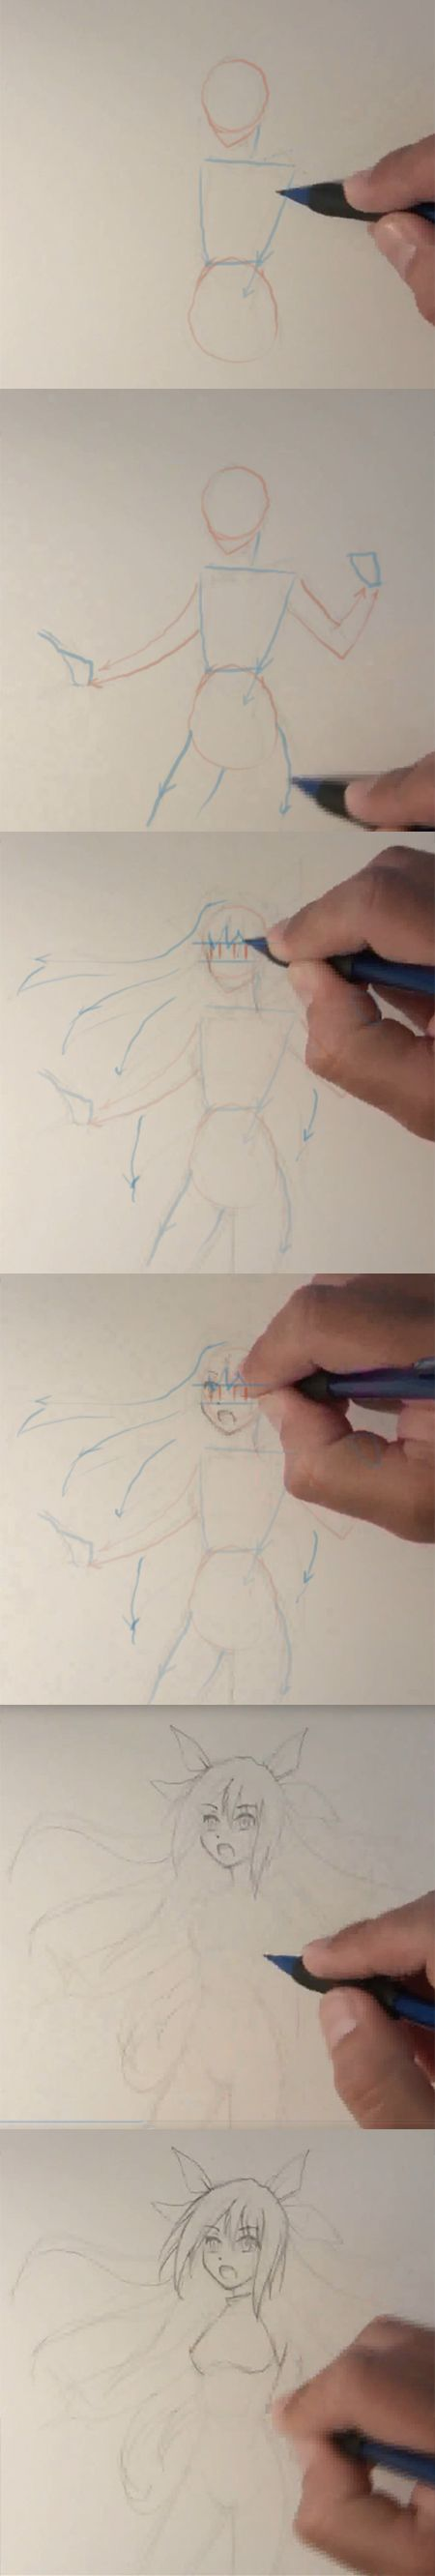 how to draw anime girl step by step